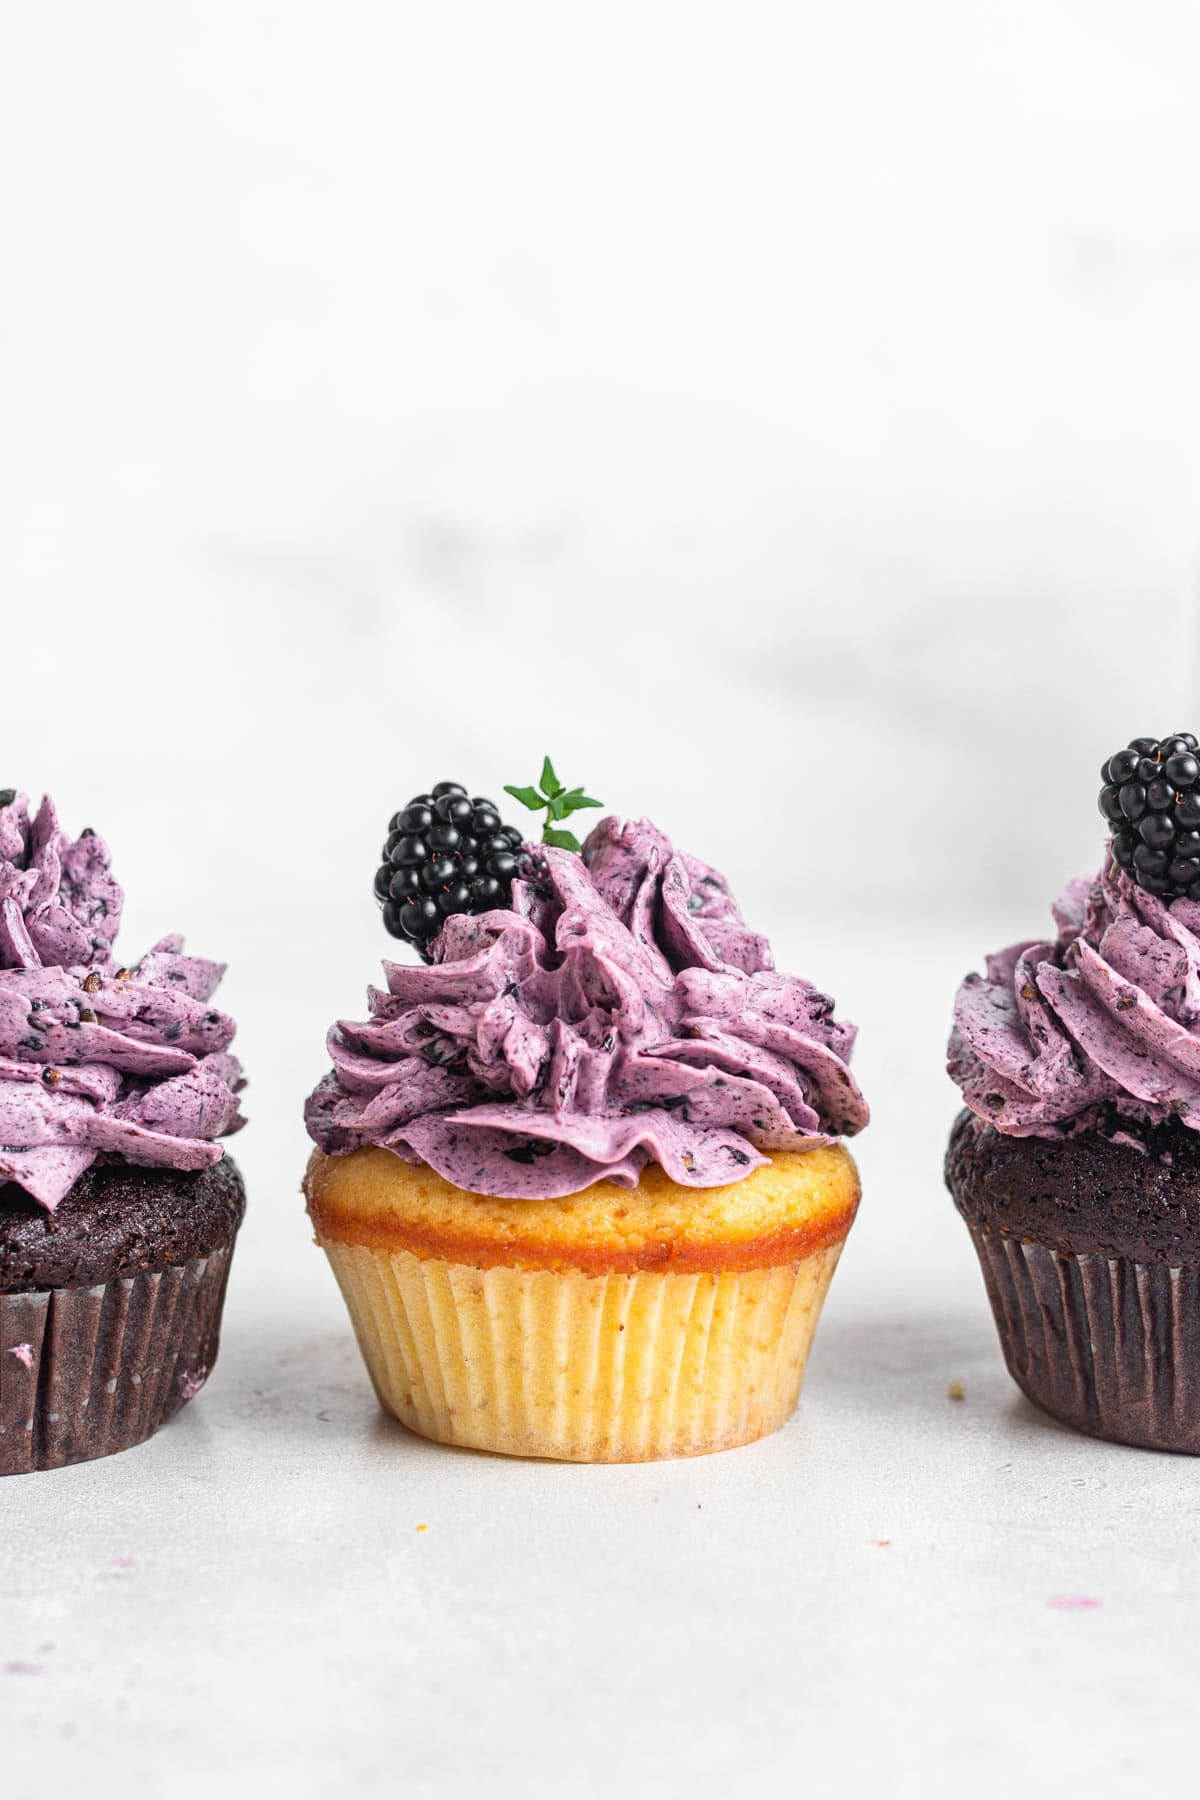 Three cupcakes with purple frosting.